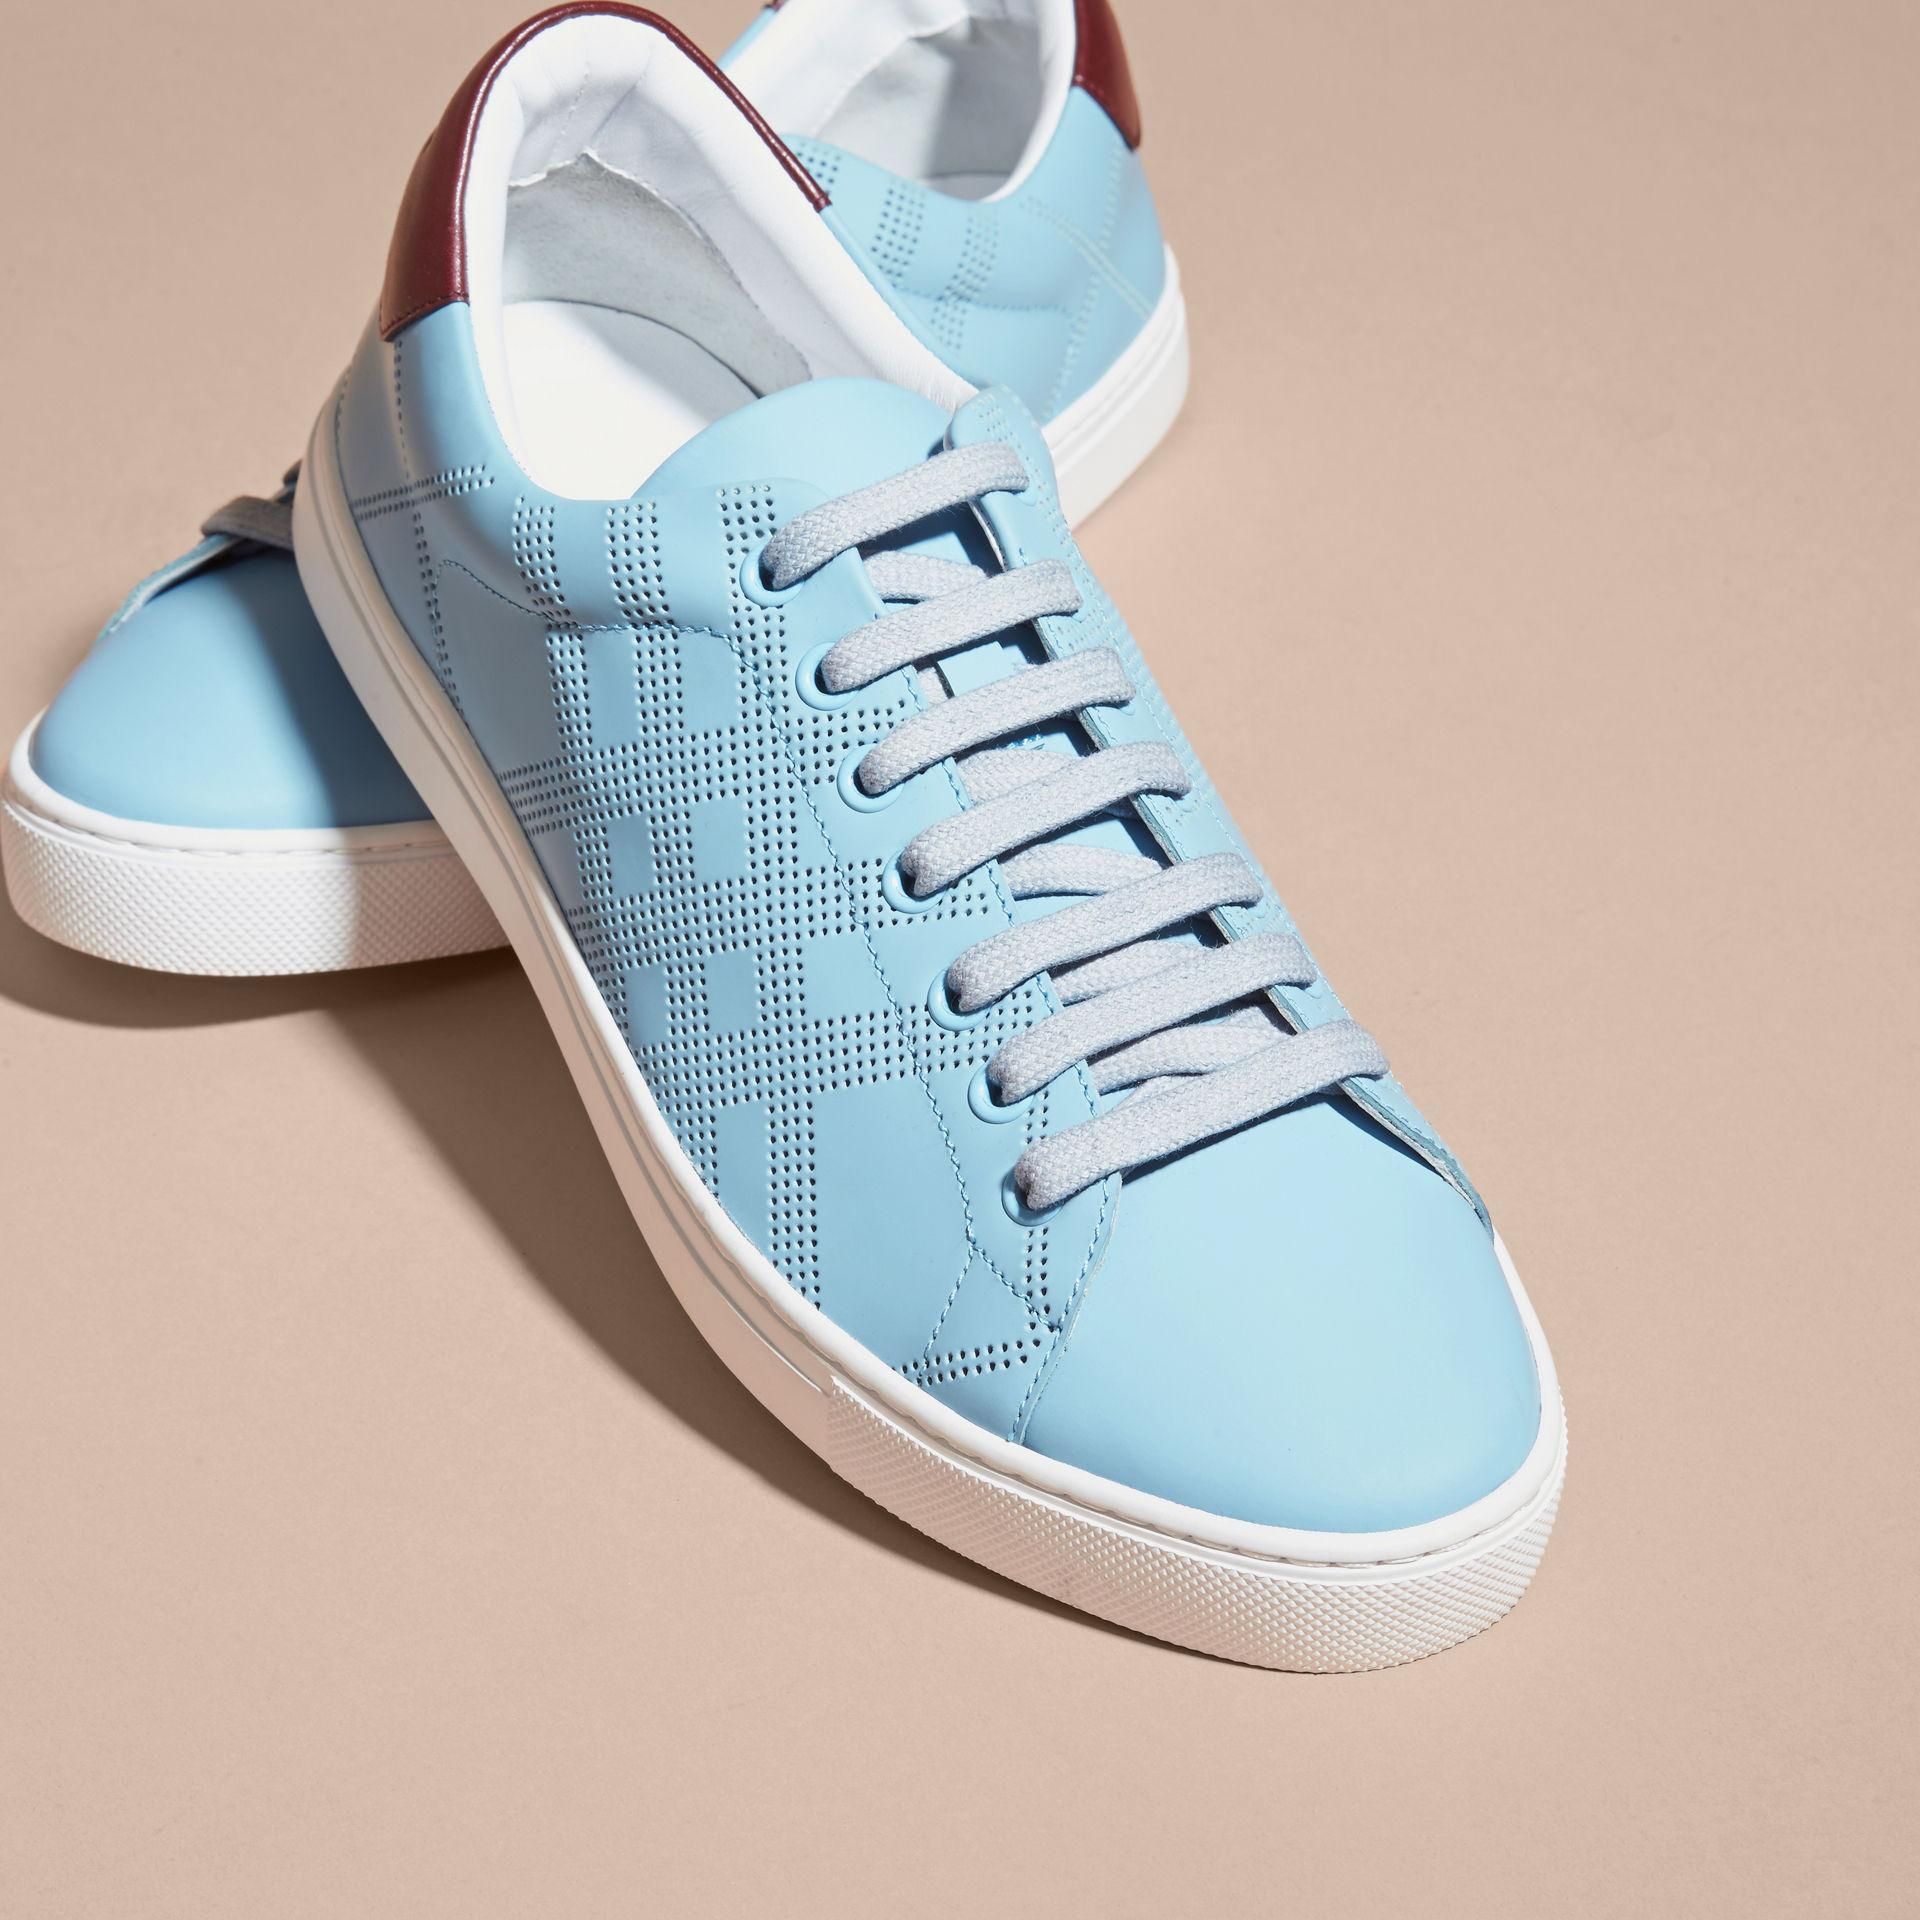 Burberry Perforated Check Leather Trainers Powder Blue/deep Claret Melange for Men